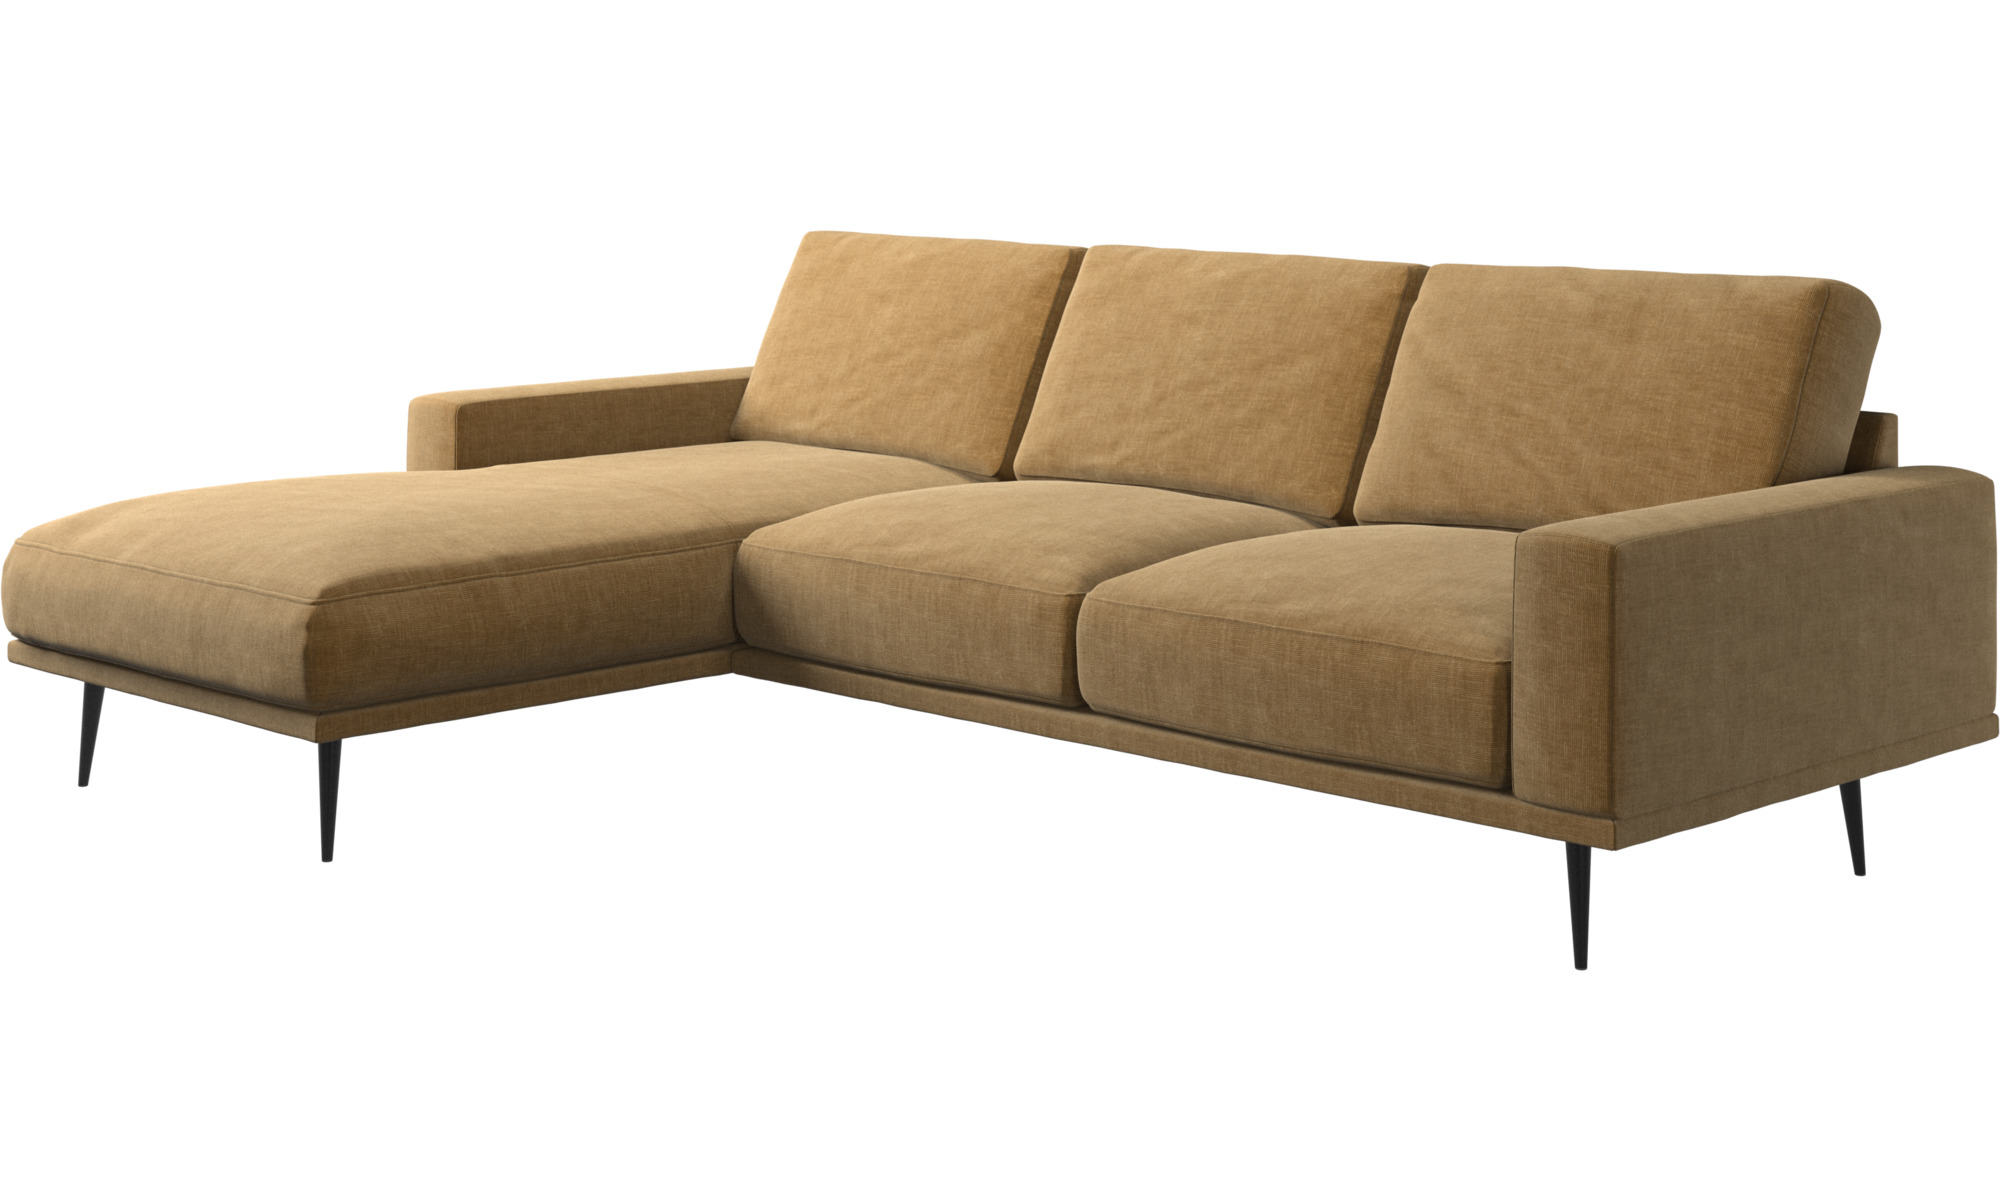 Chaise longue sofas carlton sofa with resting unit for Chaise longue dwg